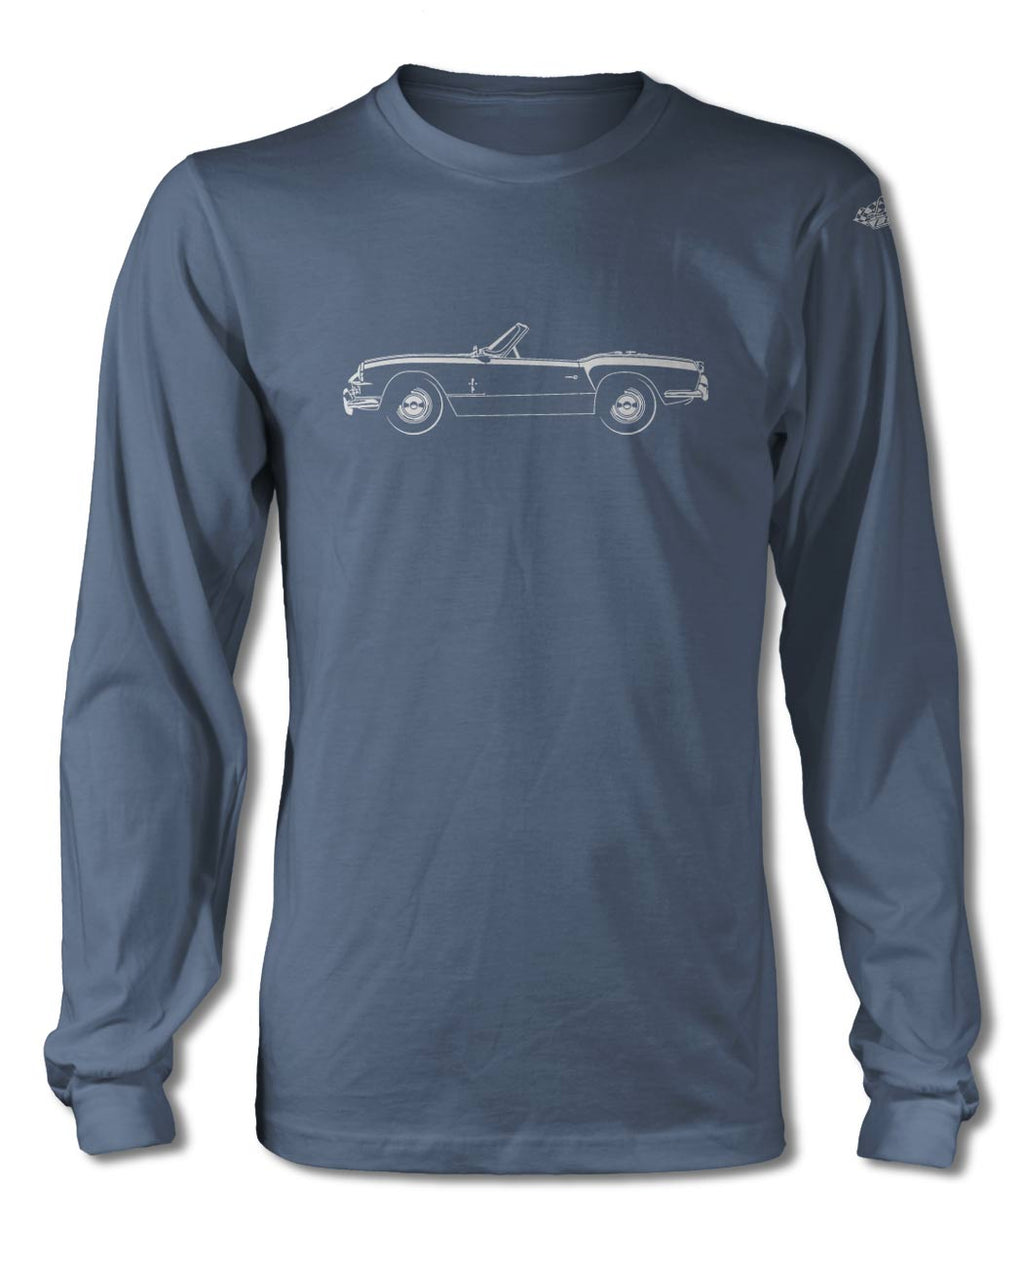 Triumph Spitfire MKI MKII Convertible T-Shirt - Long Sleeves - Side View